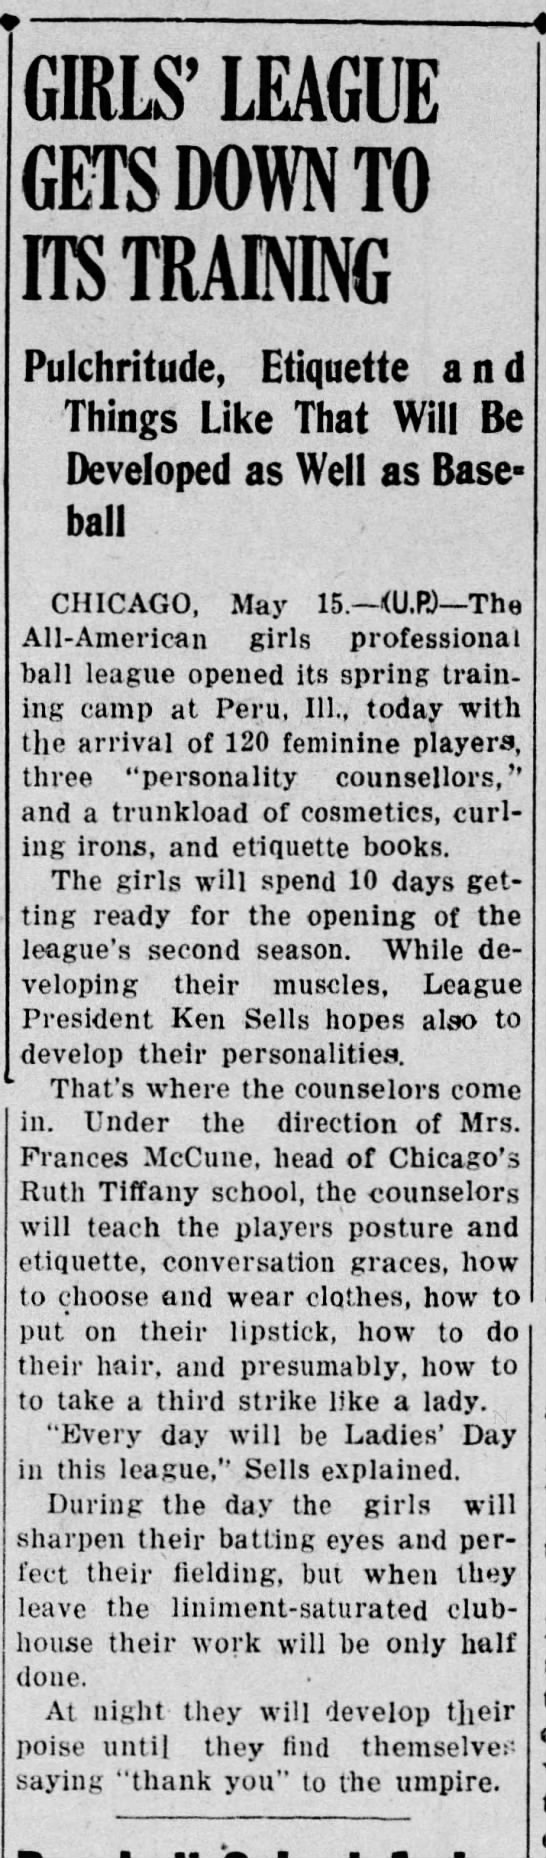 All-American Girls Professional Ball League spring training includes grooming and etiquette classes